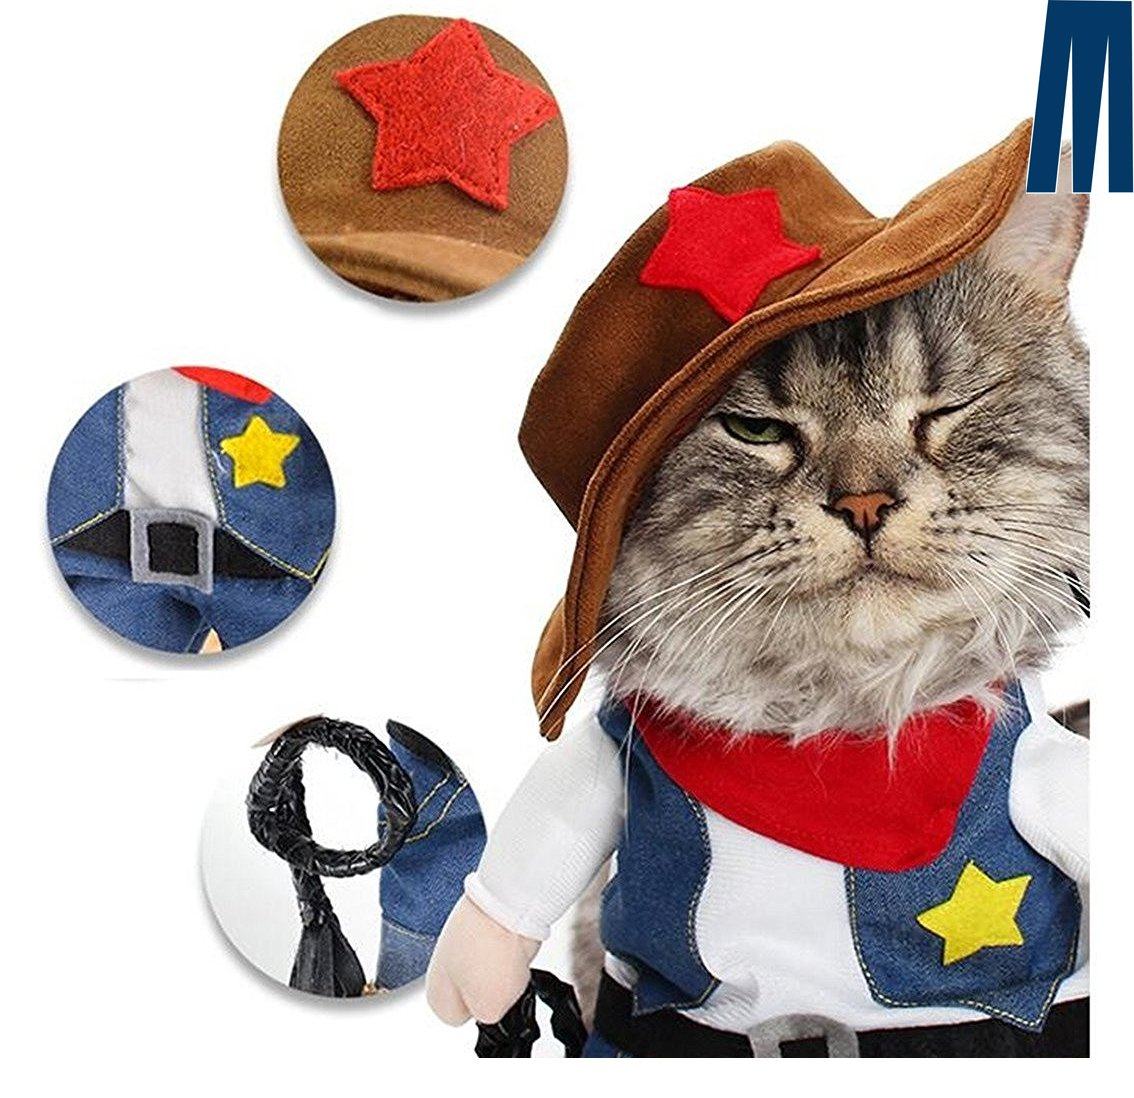 mikayoo pet dog cat halloween costumes the cowboy for party christmas special 713524099862 ebay. Black Bedroom Furniture Sets. Home Design Ideas